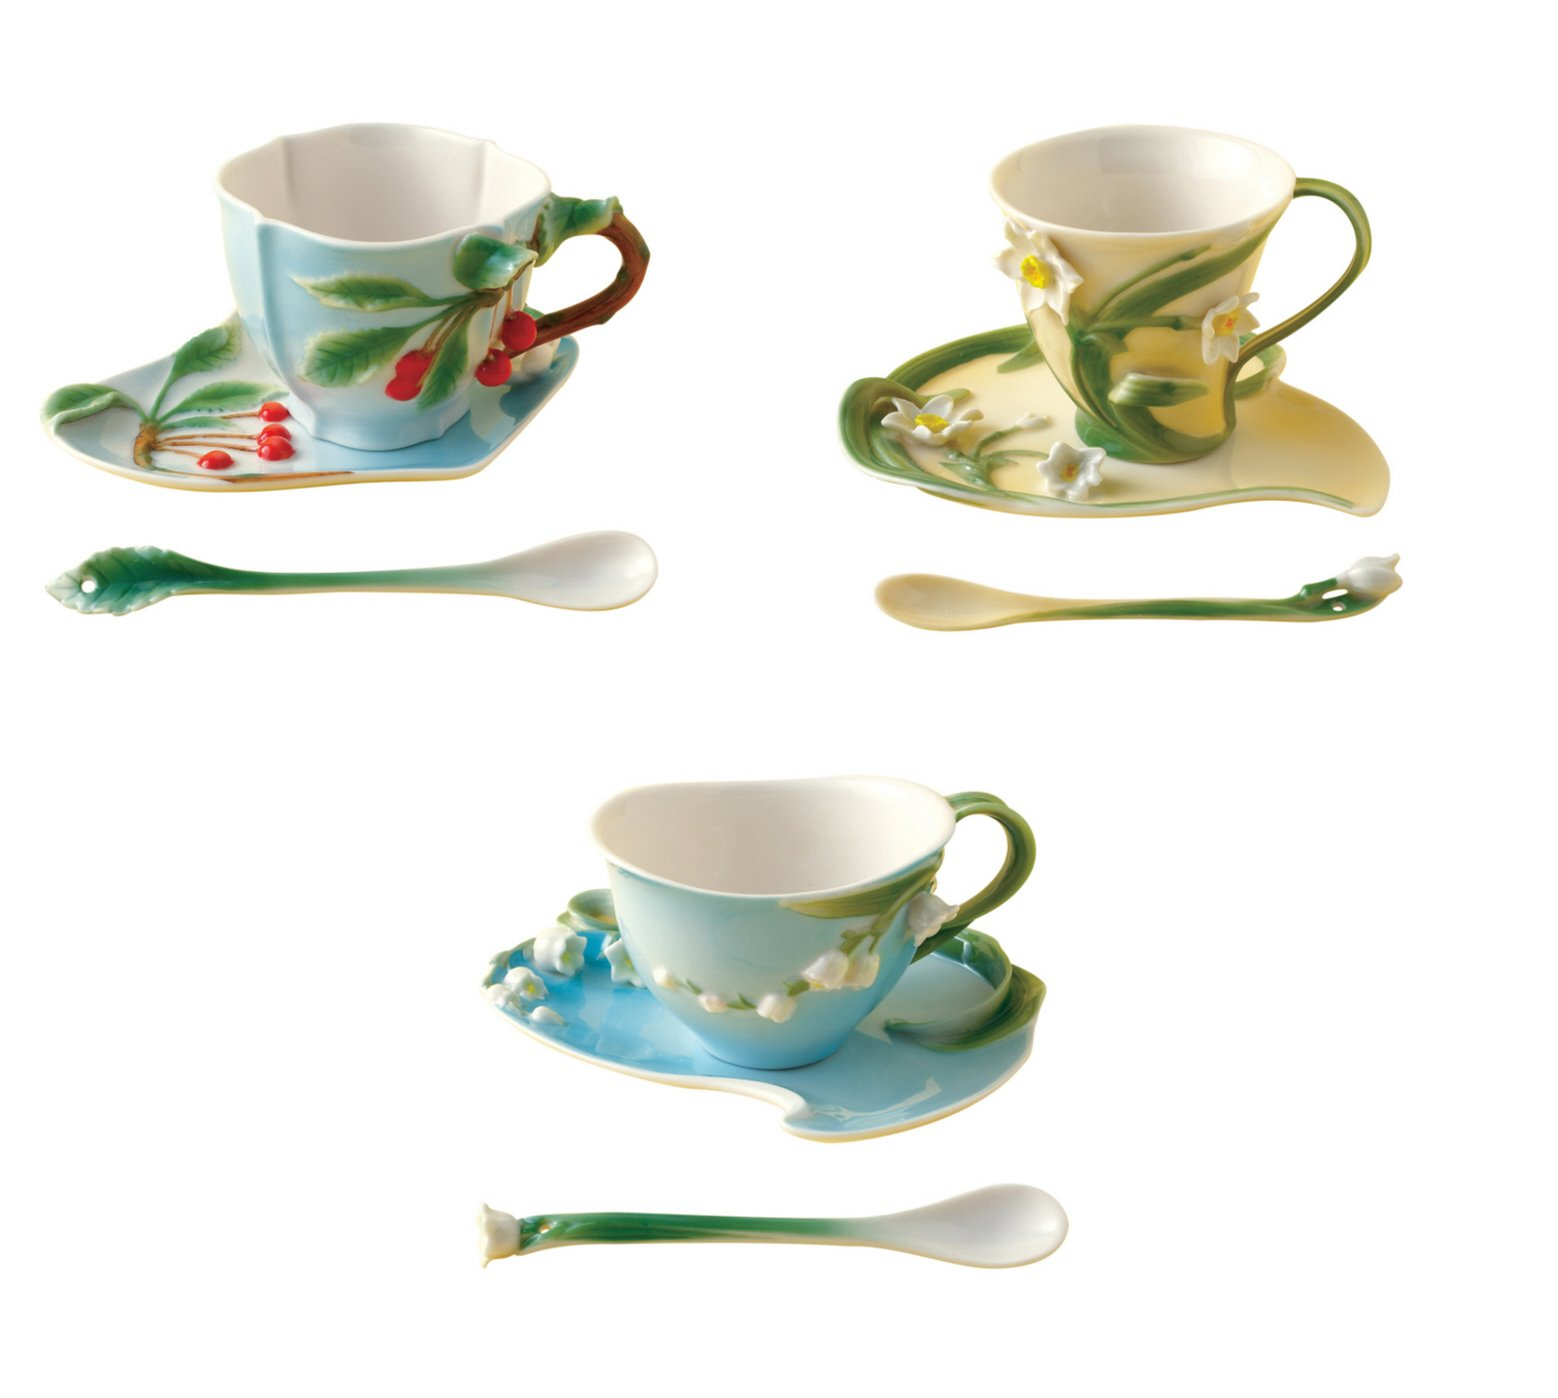 Twos Company Garden Party Tea Set- 3 Cup, Saucer and spoon sets - (Cherry, Narcissus and Lilly of Valley)